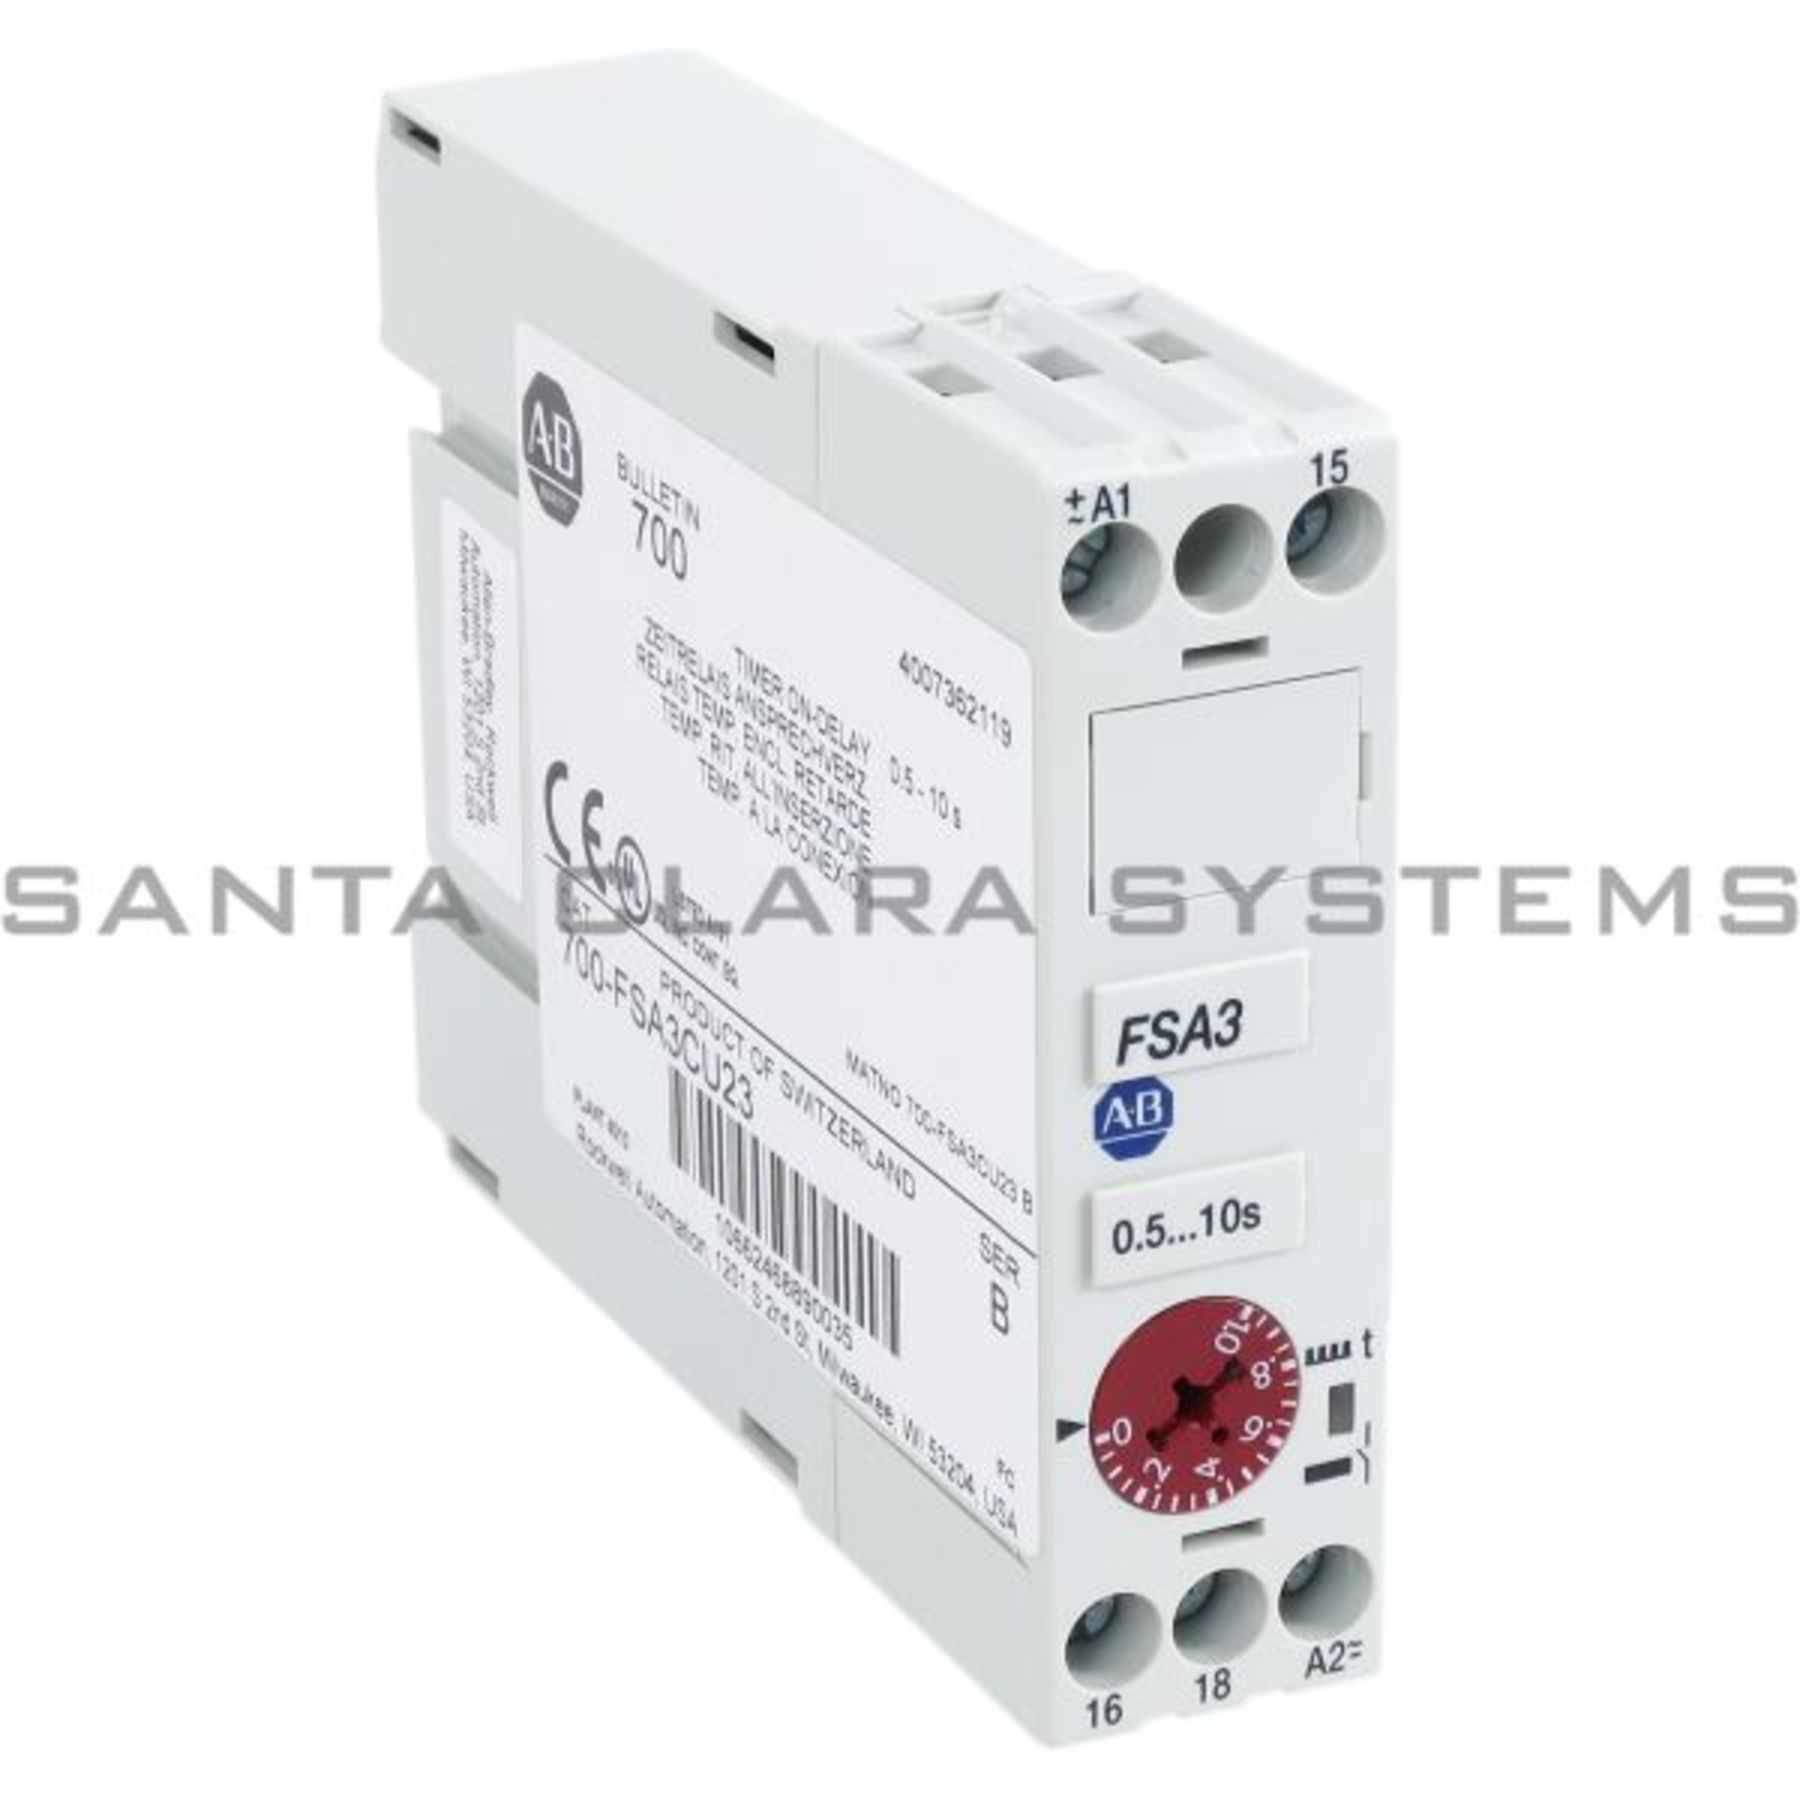 700 Fsa3cu23 Timer On Delay In Stock Ships Today Santa Clara Systems Circuit Breaker With Allen Bradley Product Image